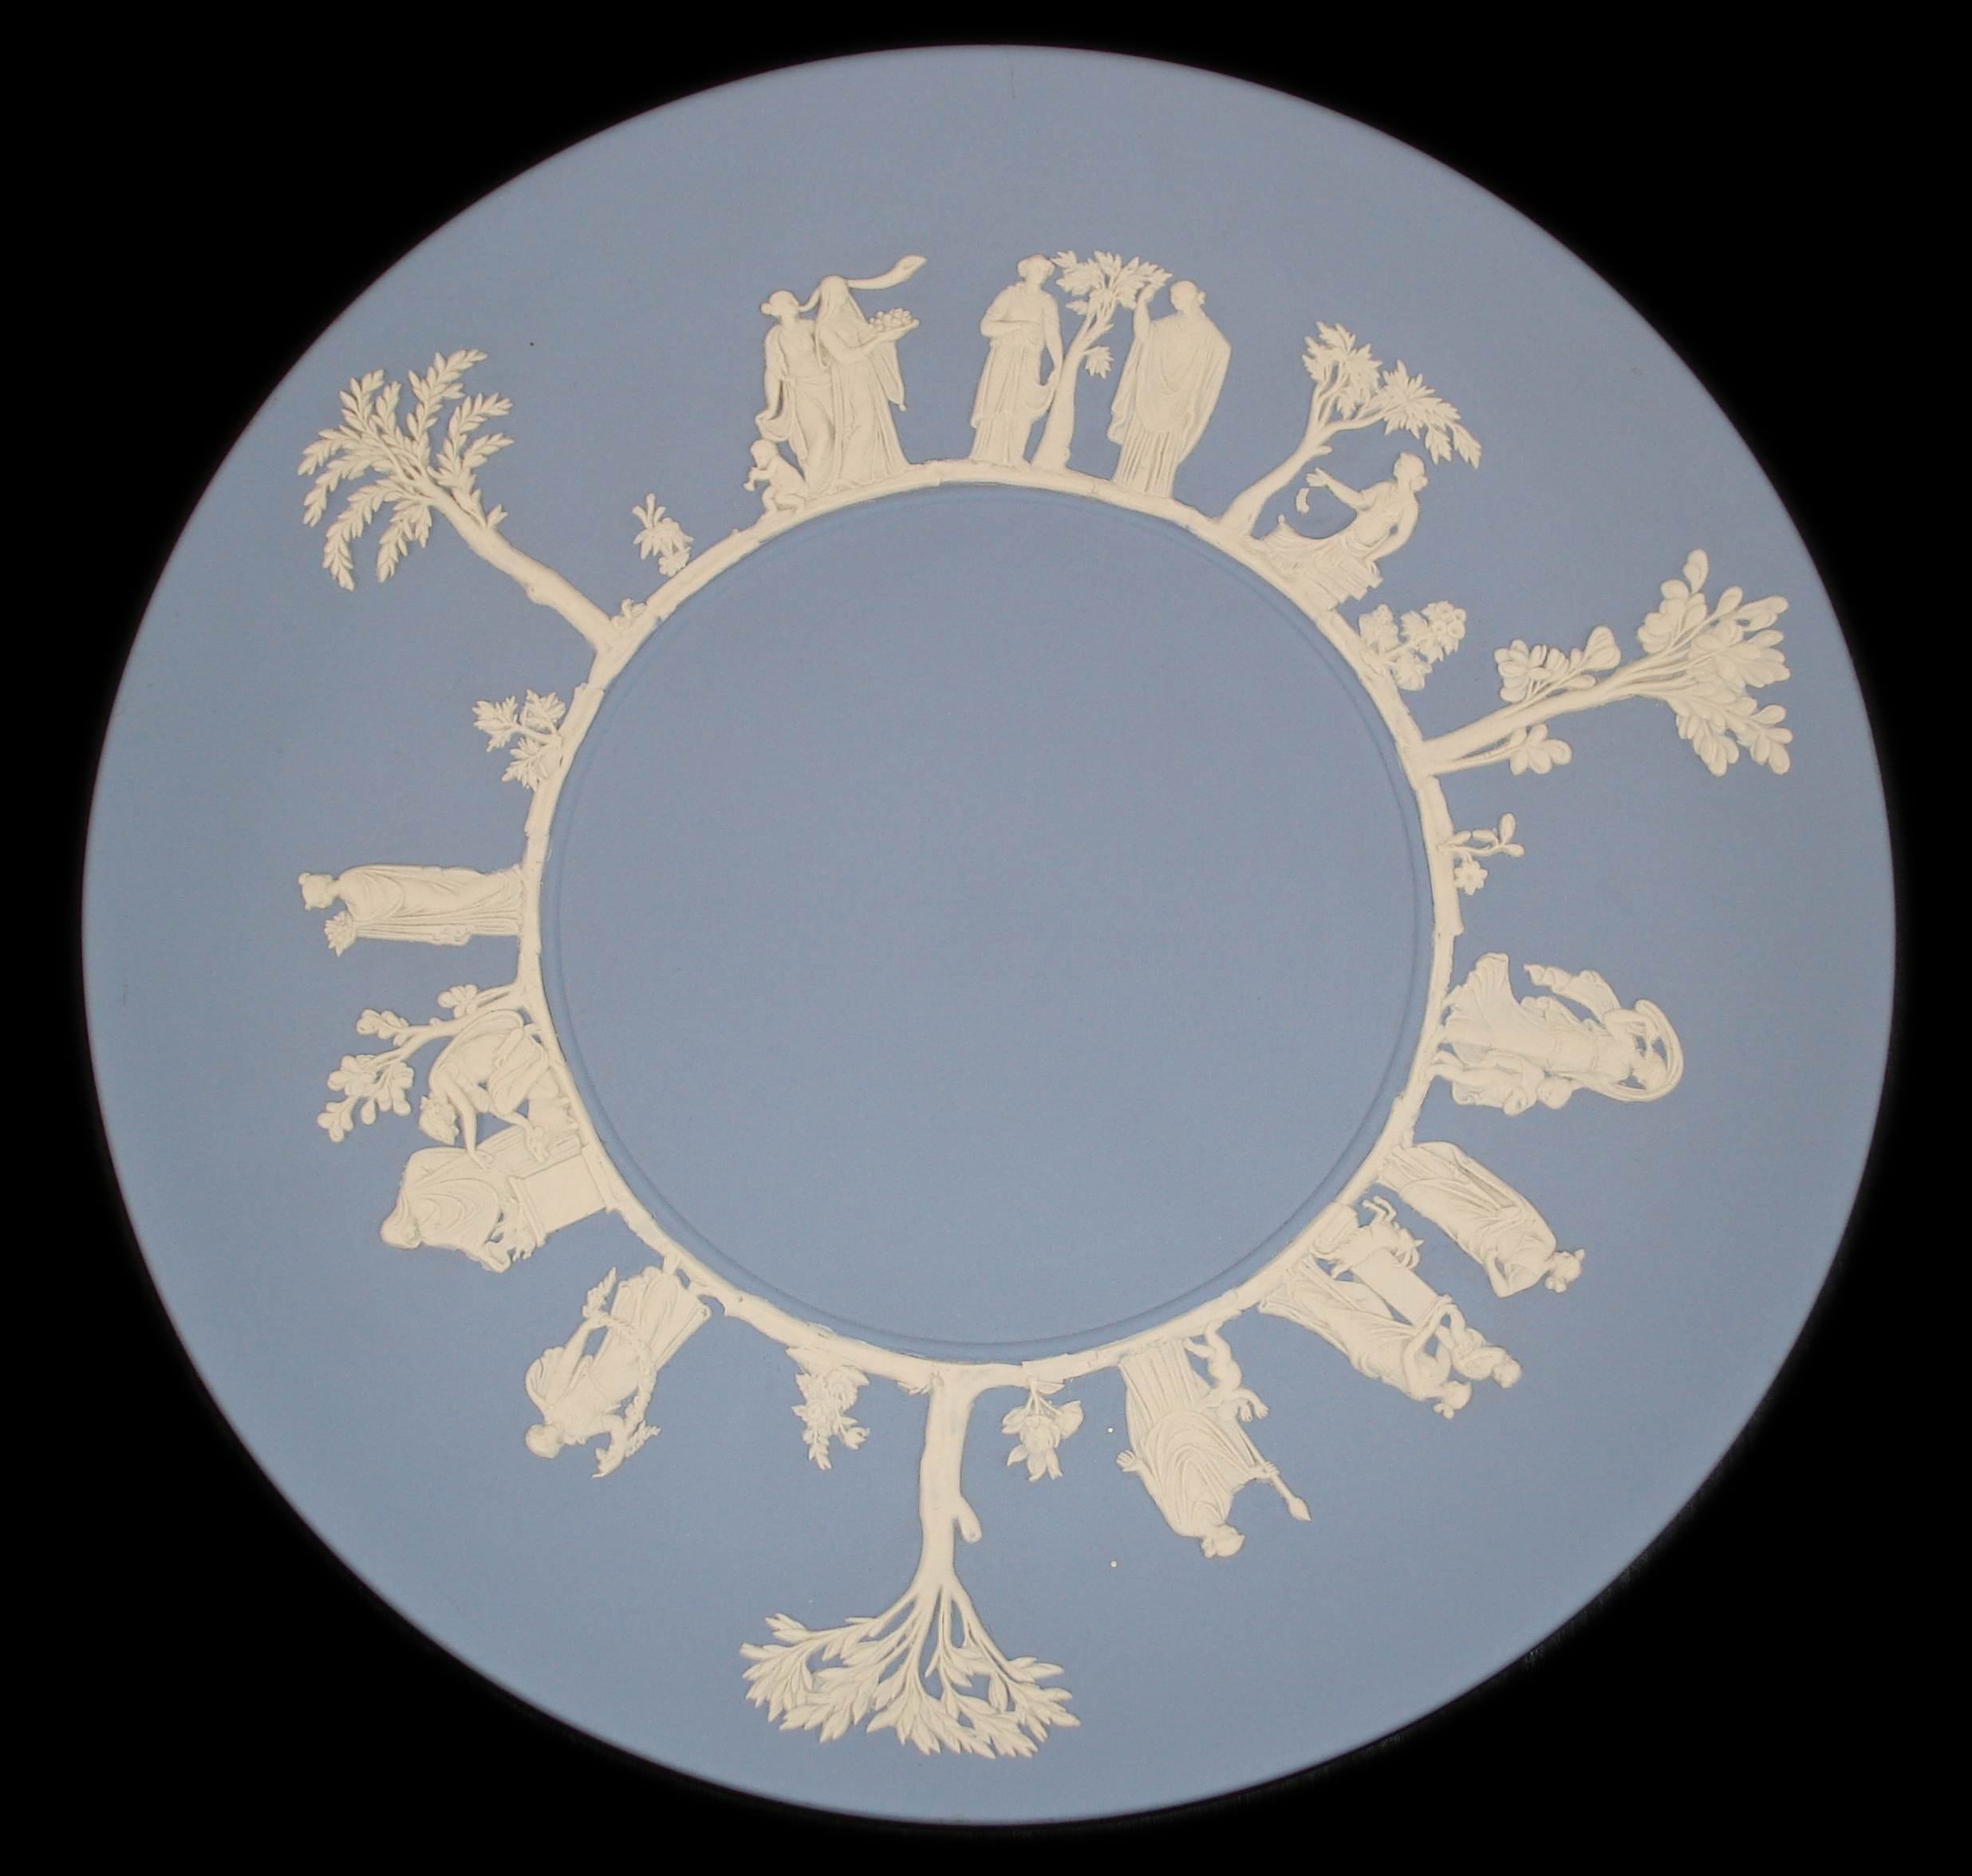 File wikimedia commons Wedgewood designs